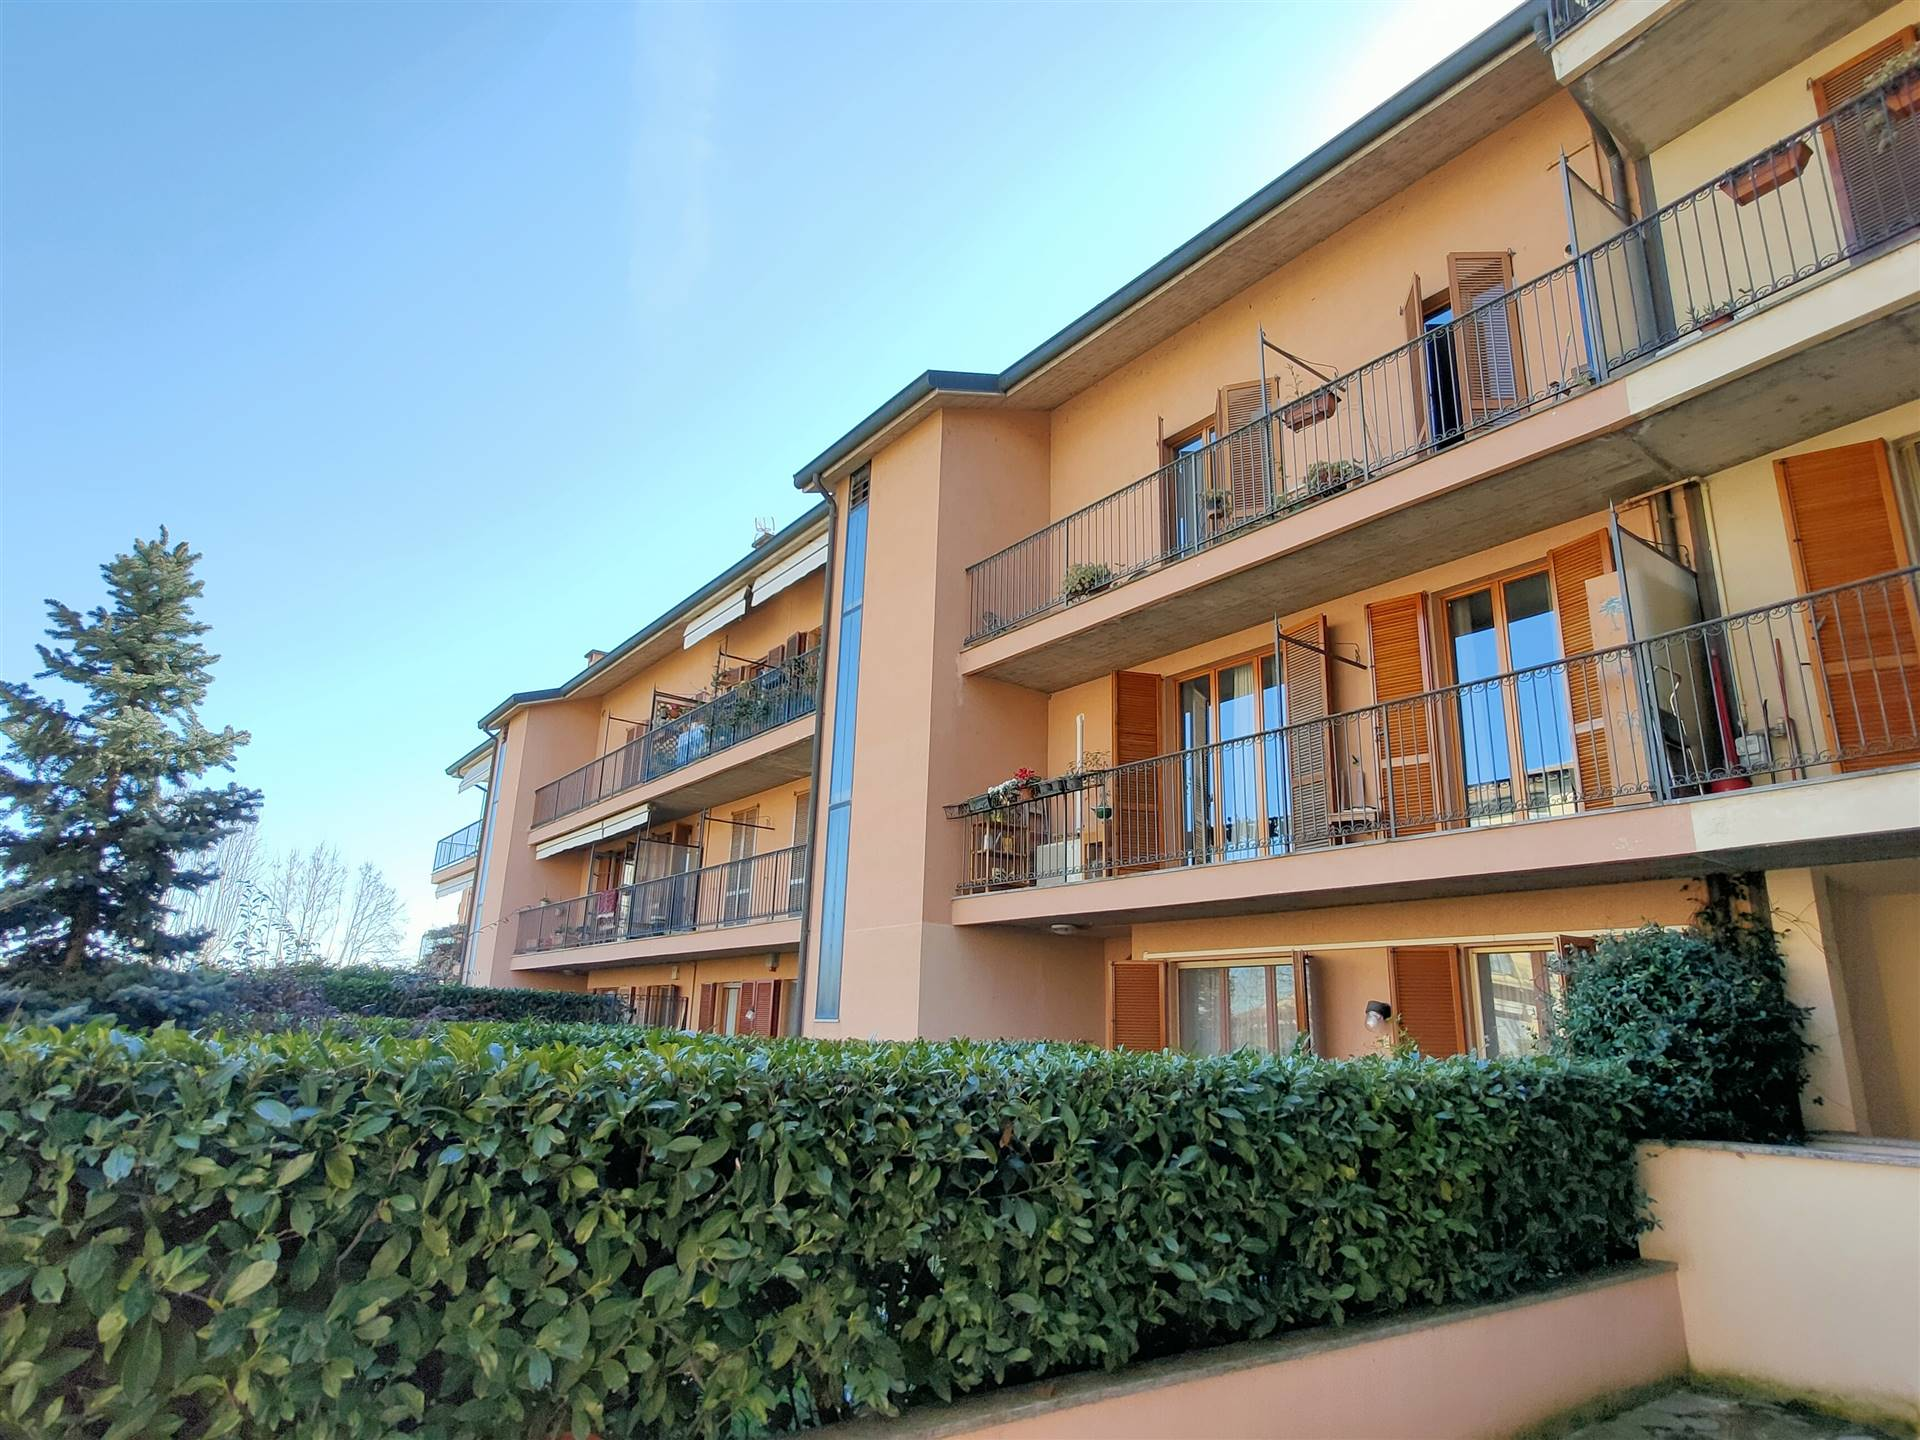 CENTRO, LODI, Apartment for sale of 115 Sq. mt., Good condition, Heating Individual heating system, Energetic class: D, placed at 2° on 3, composed